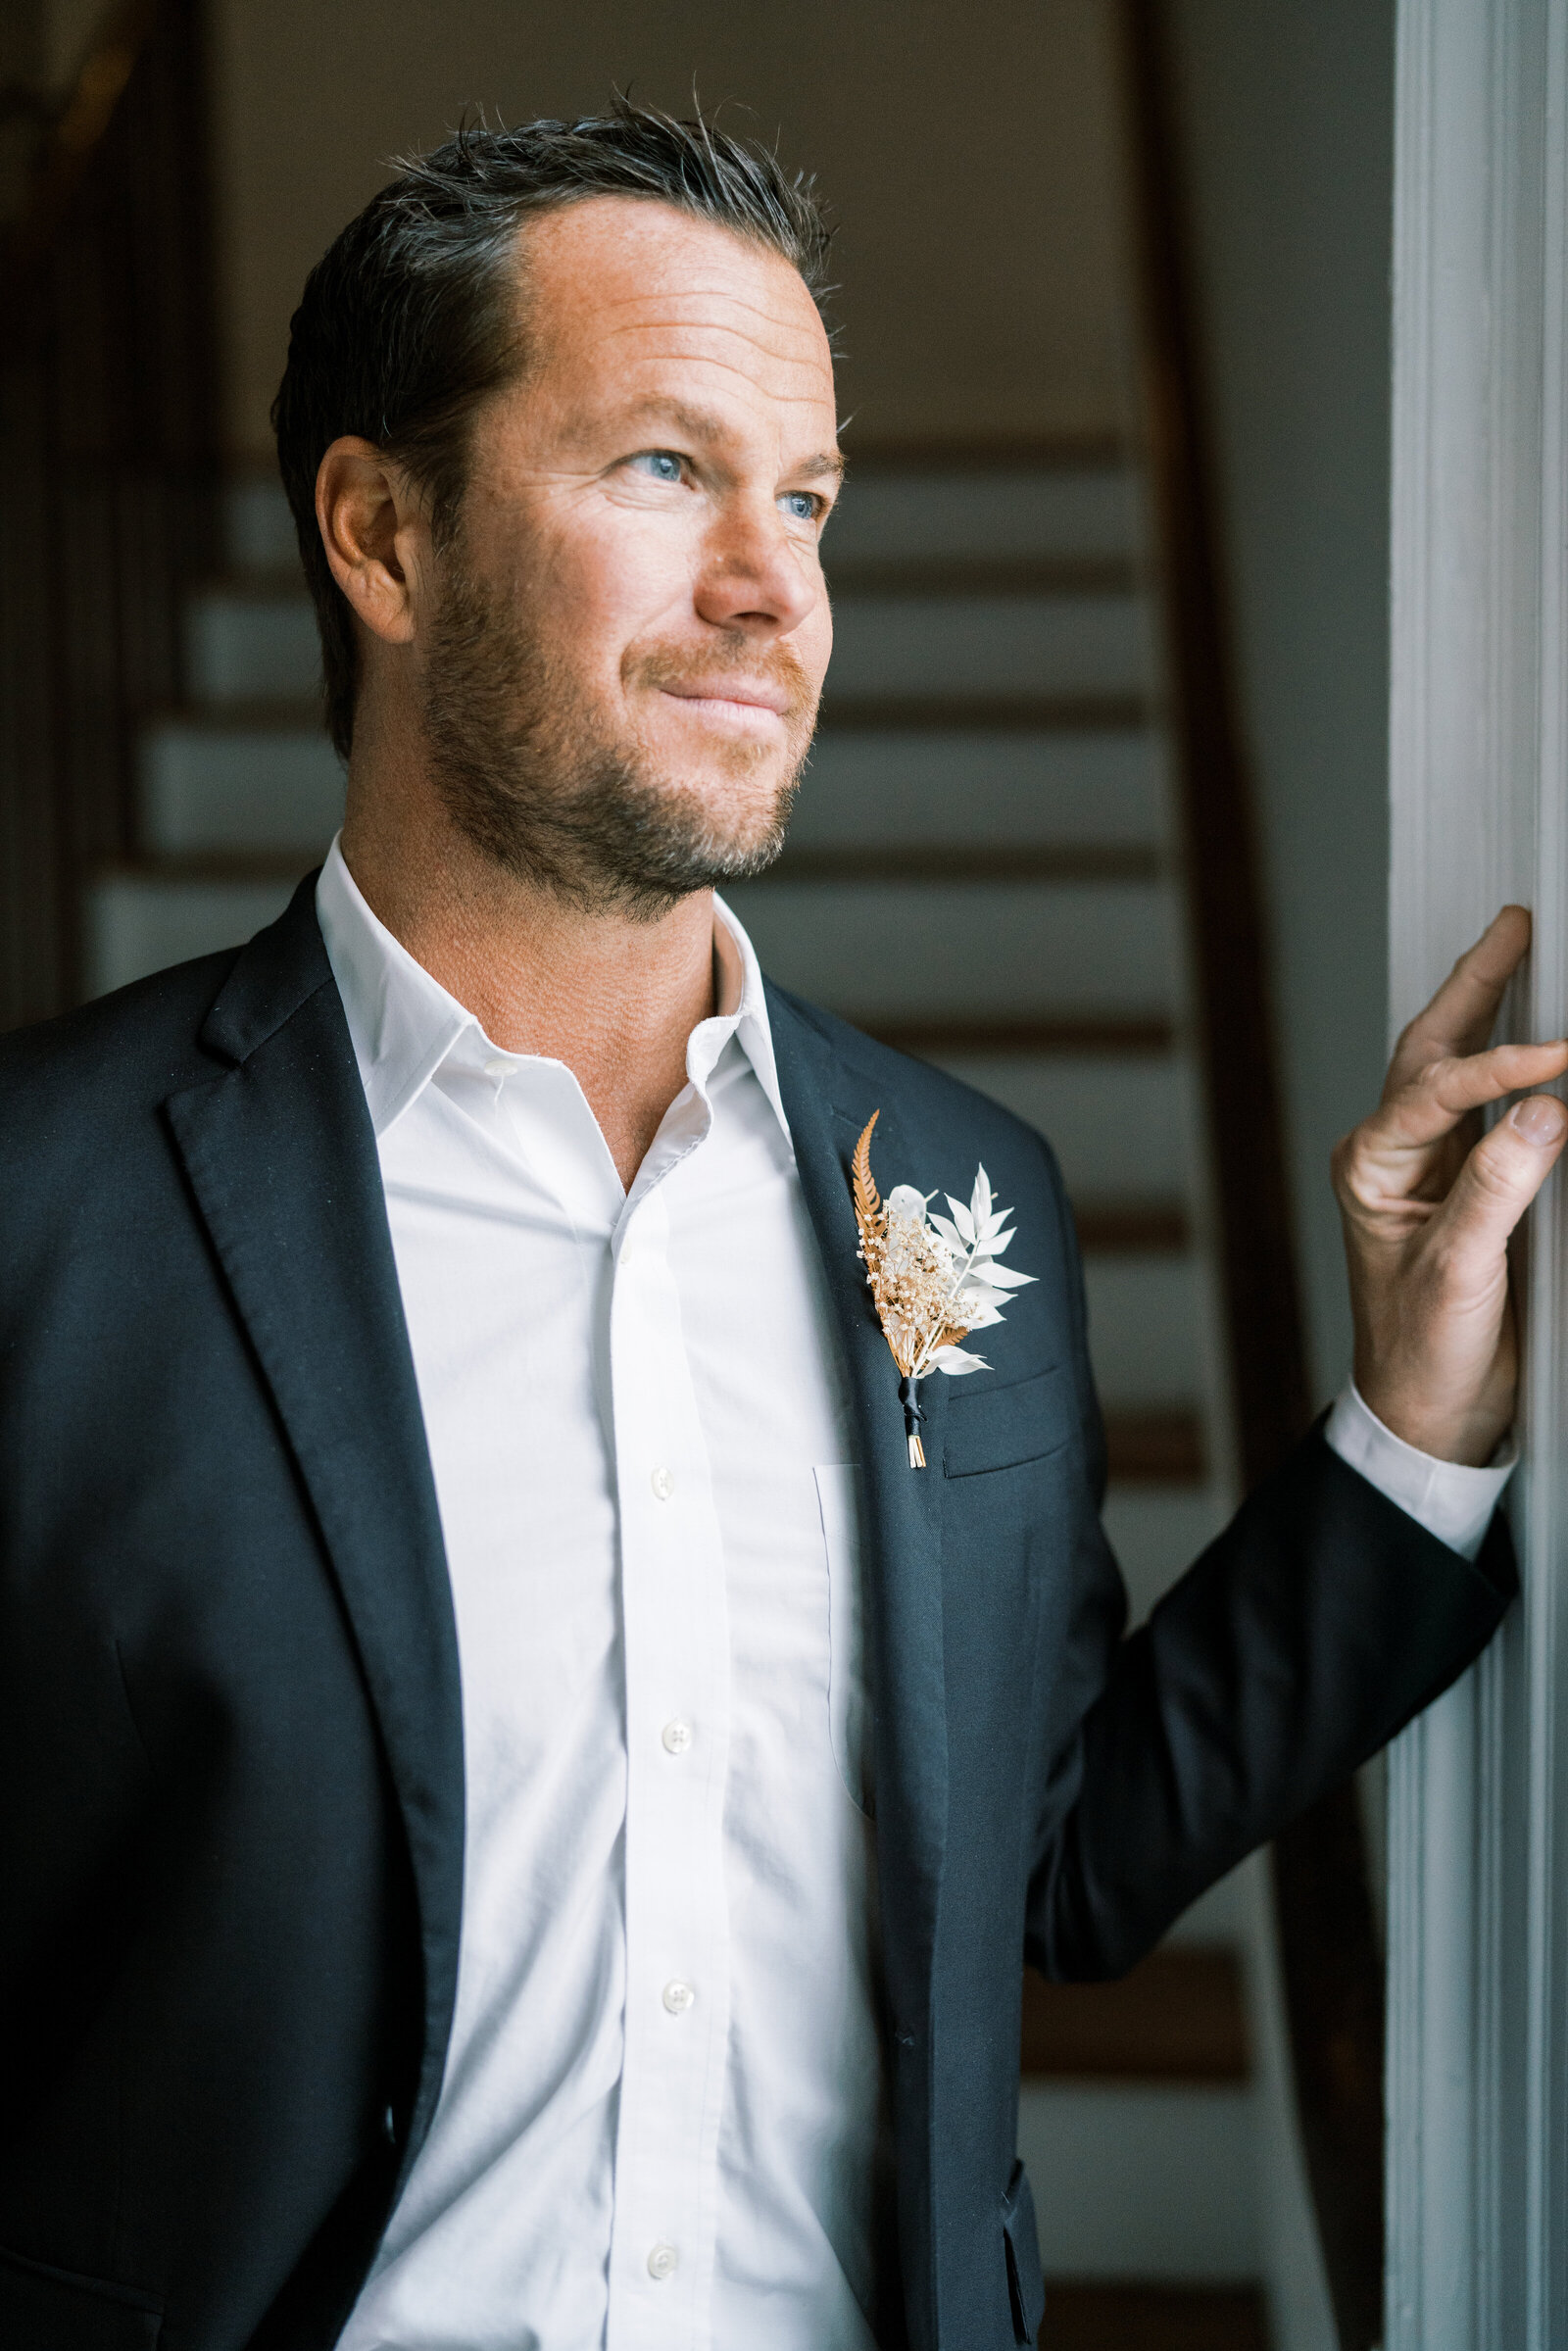 groom in a black suit looking out the window